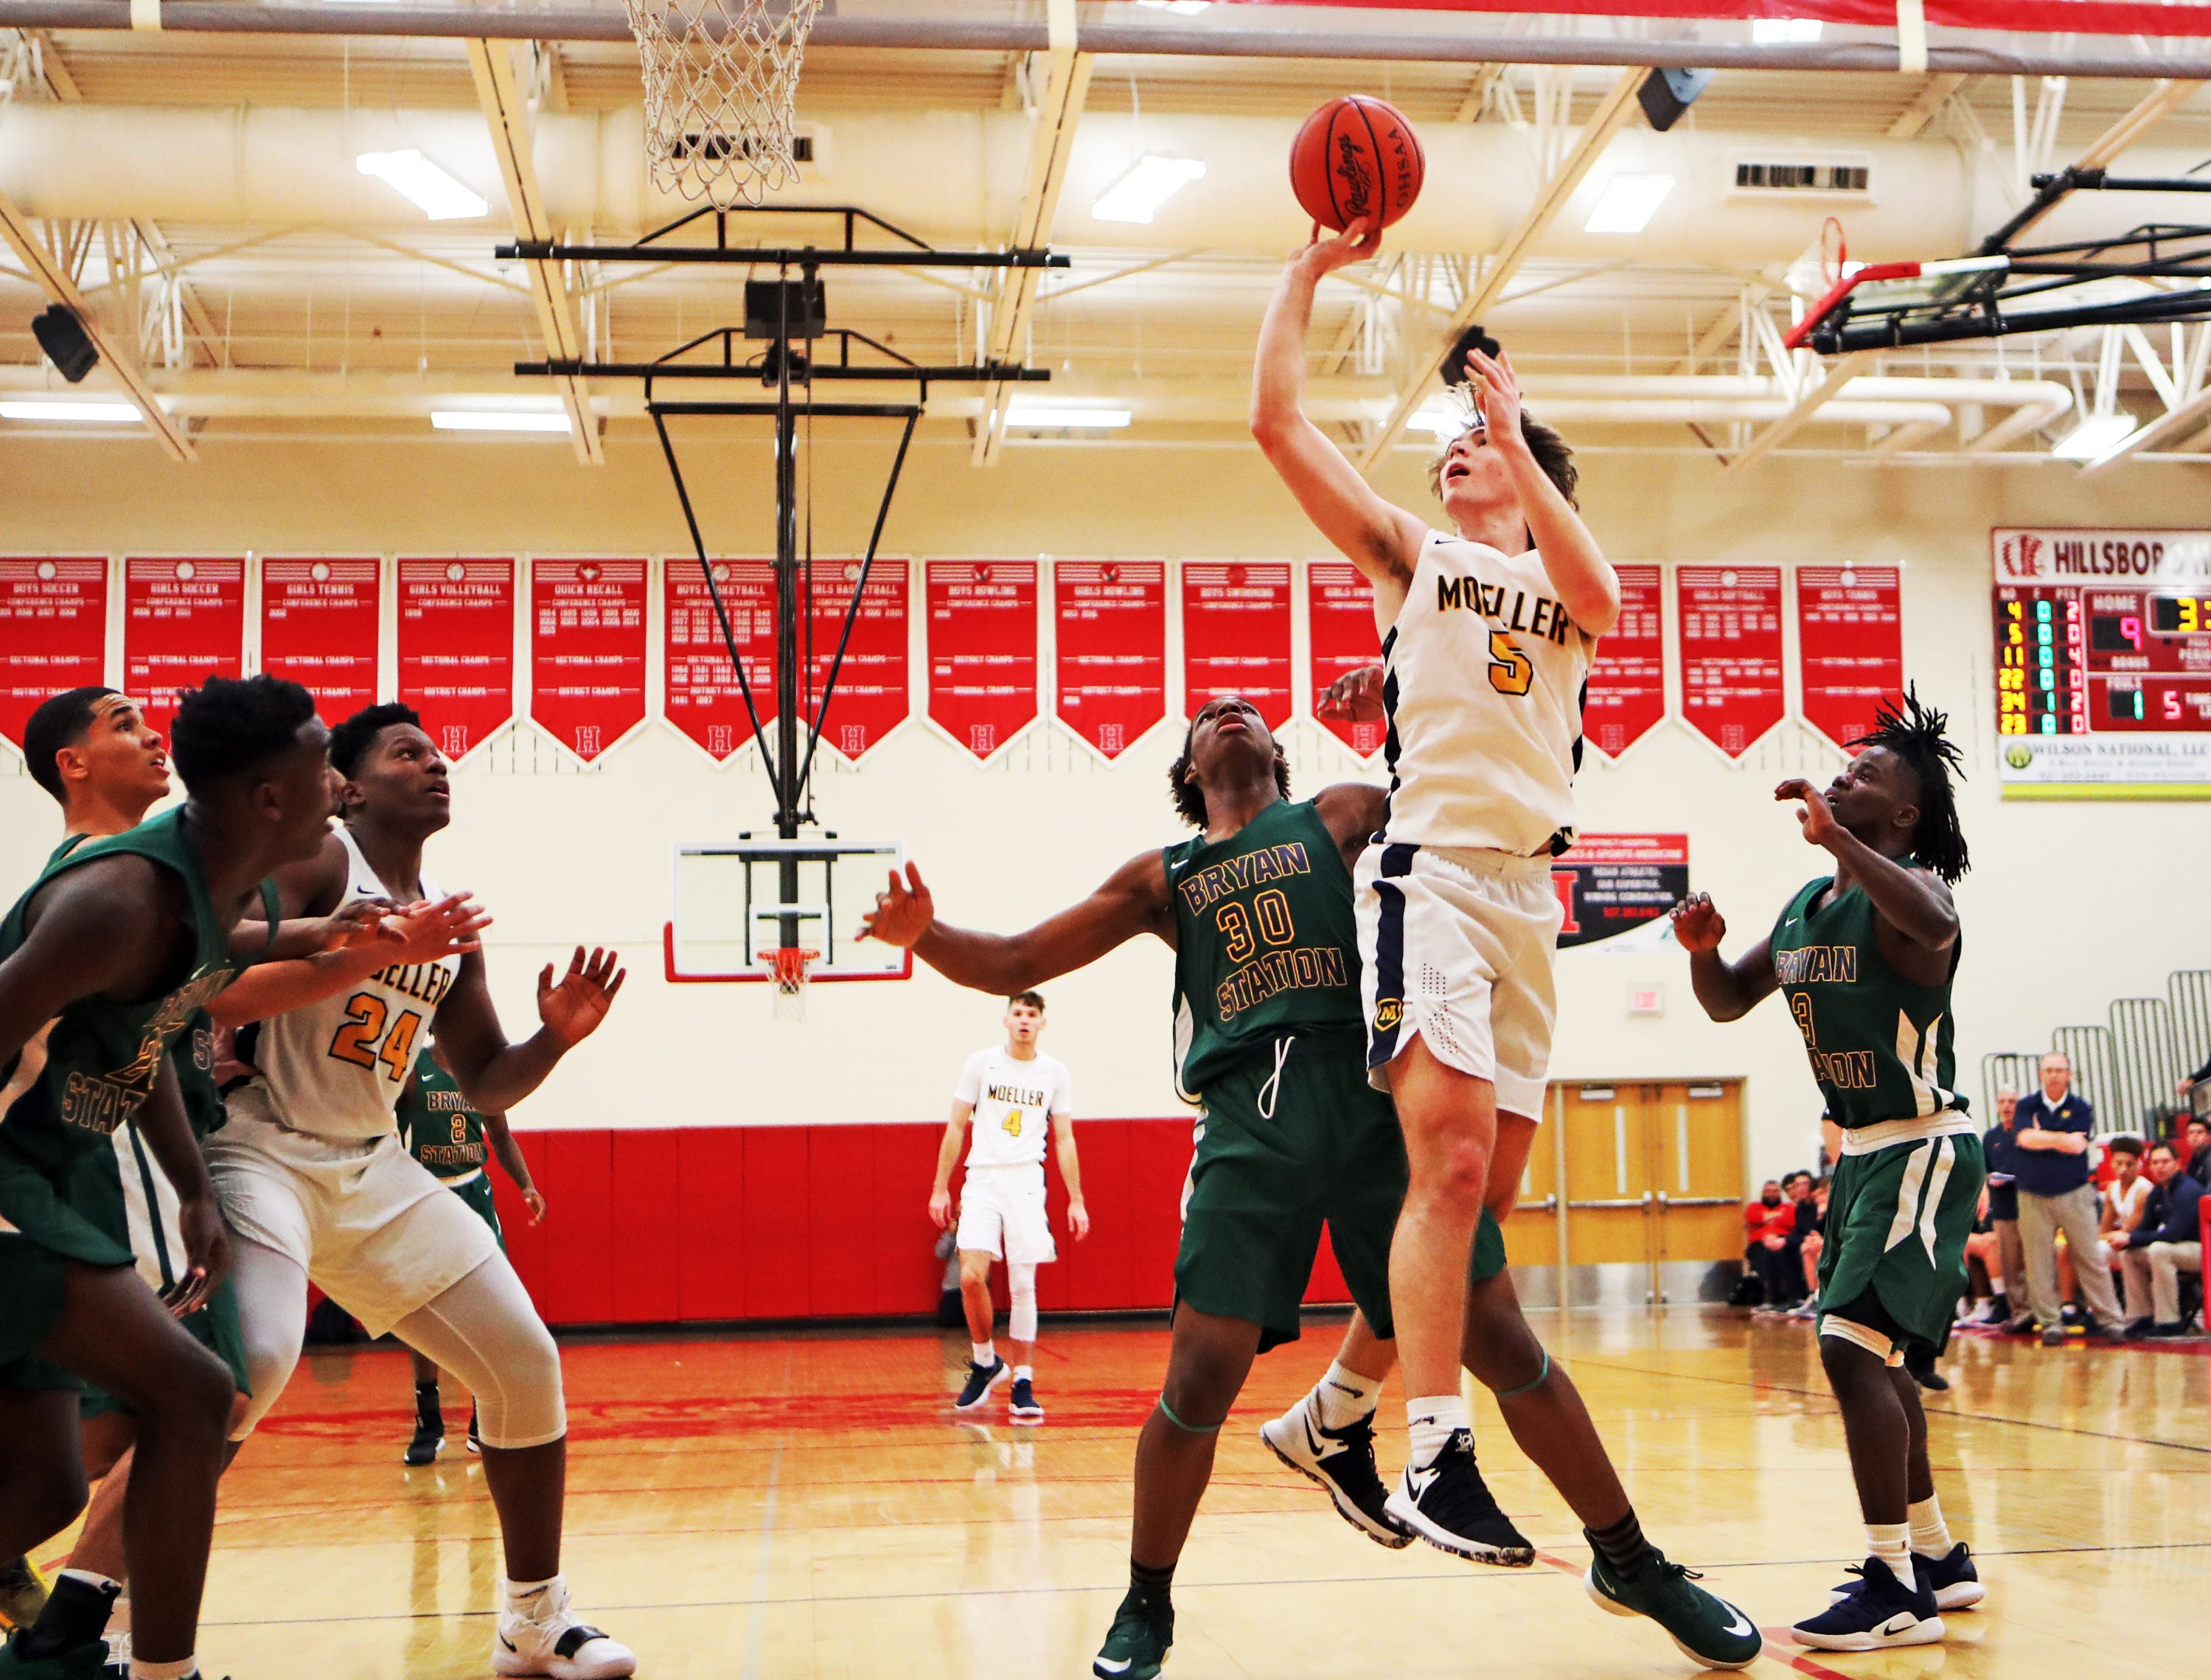 Moeller guard Alec Pfriem drives and scores at the Ohio Valley Hoops Classic at Hillsboro High School Dec. 1.